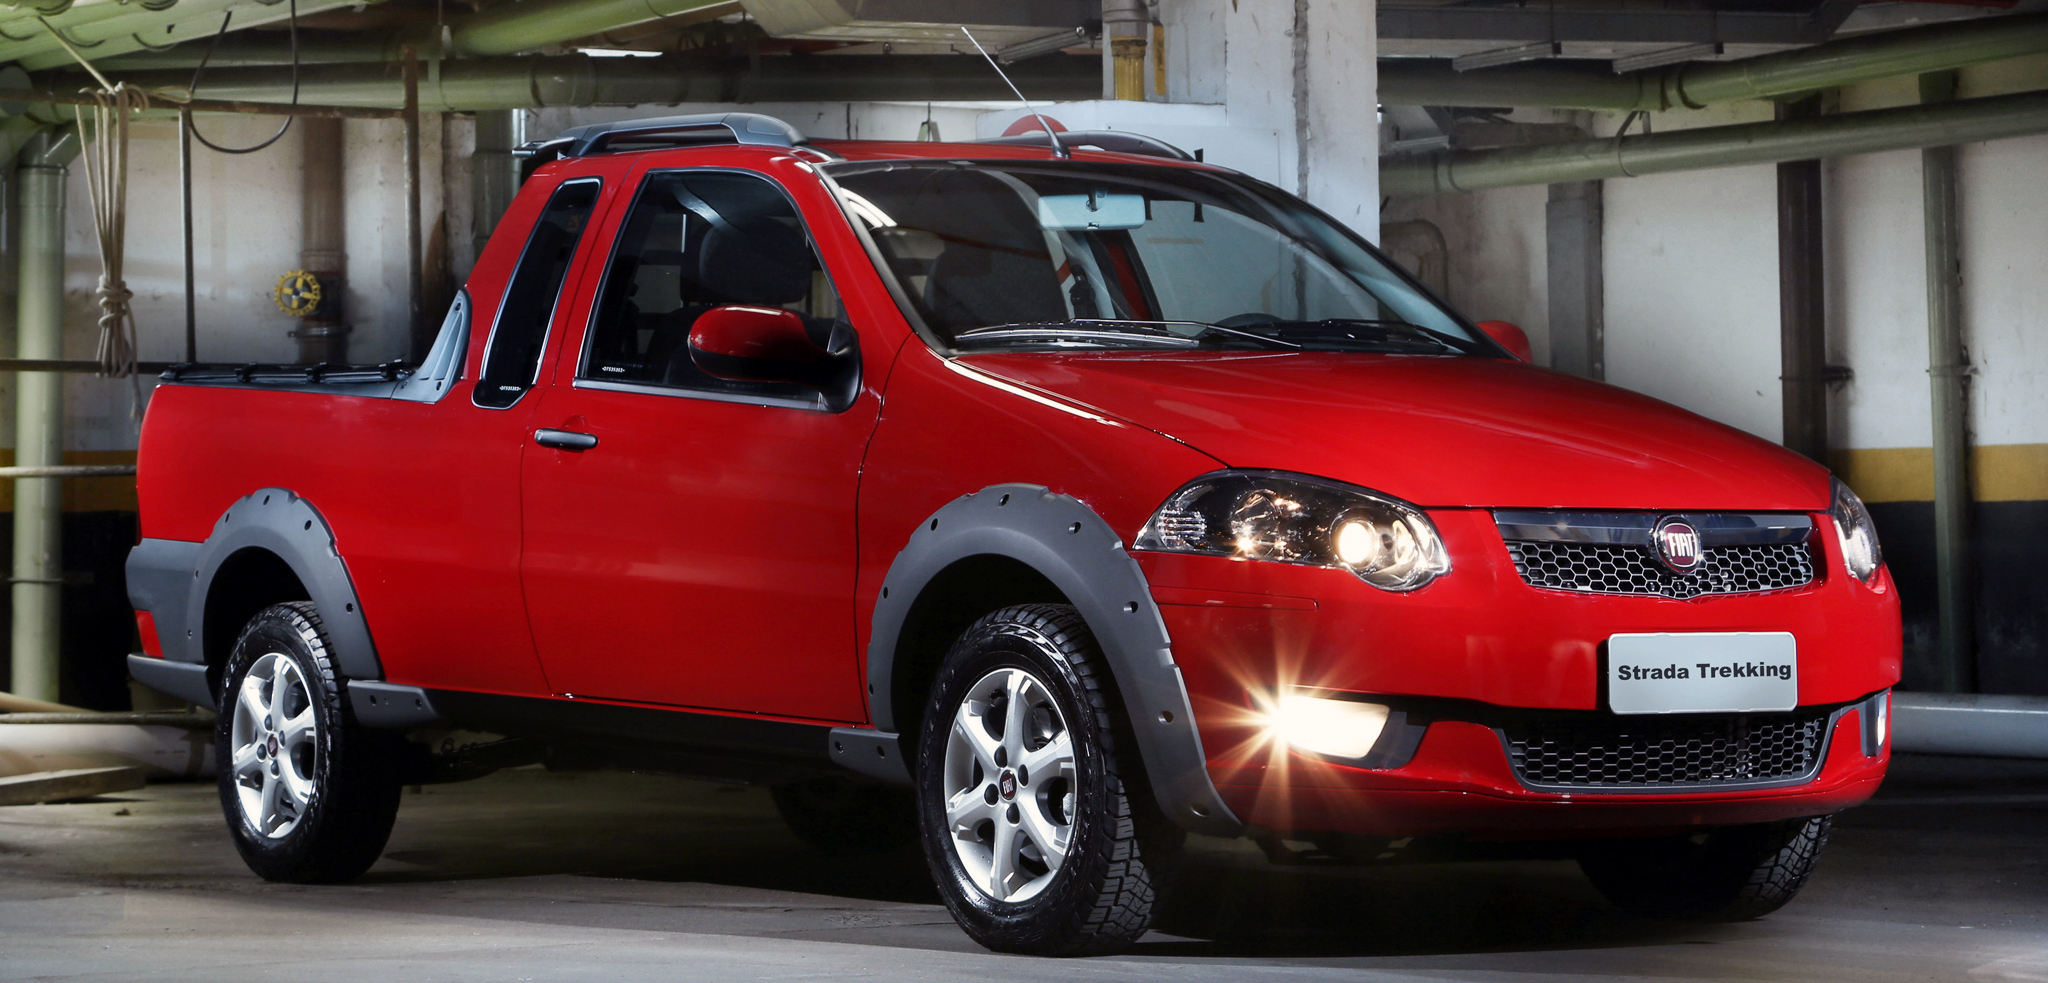 Fiat Also Getting Mitsubishi Based Pickup Report Image